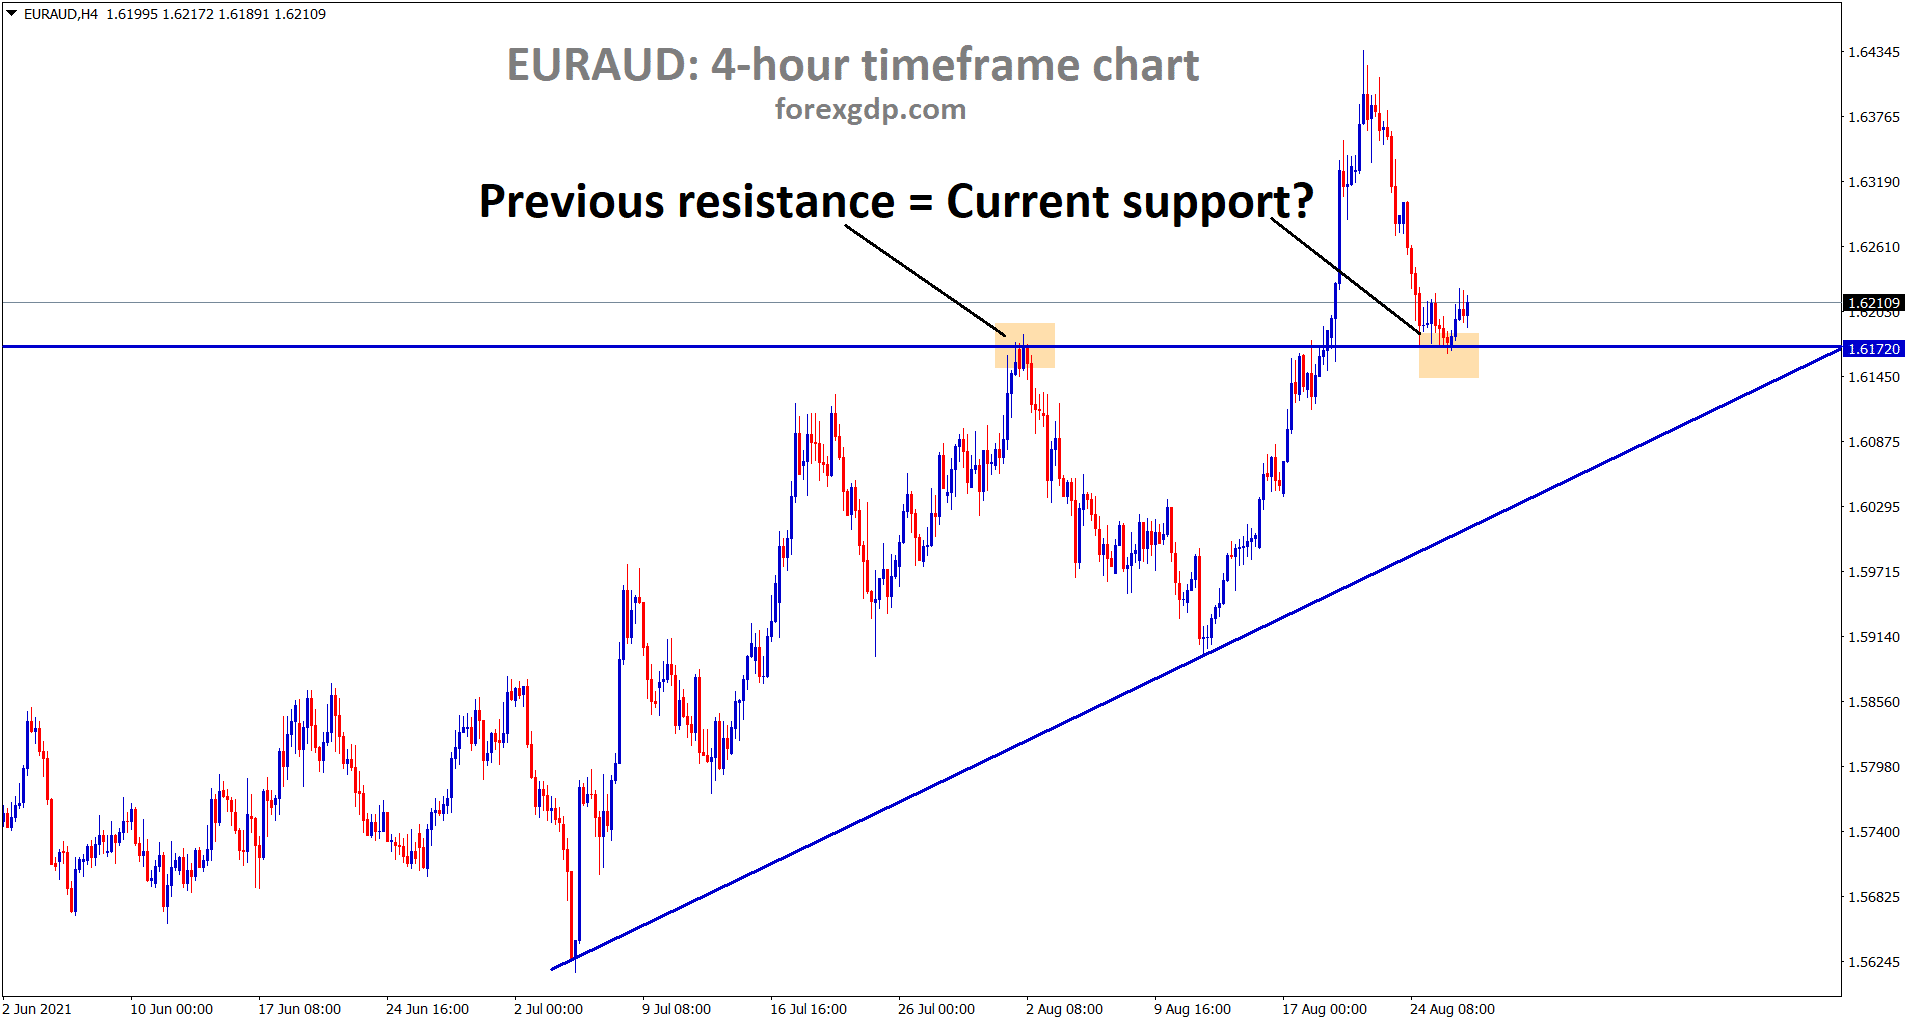 EURAUD is standing at the support area where previous resistance turn into support